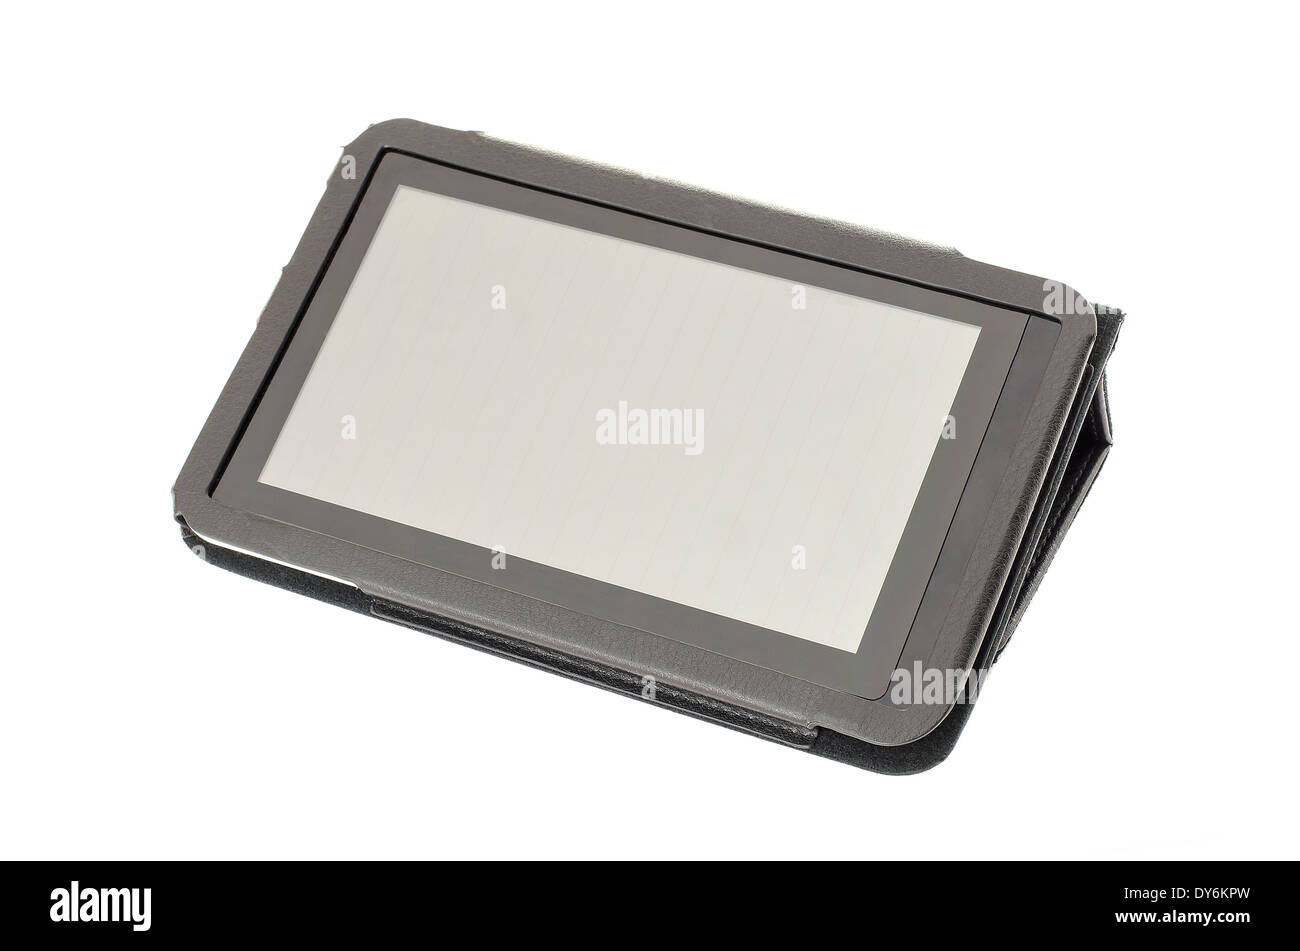 Tablet PC in its holder stand, on a white background. - Stock Image